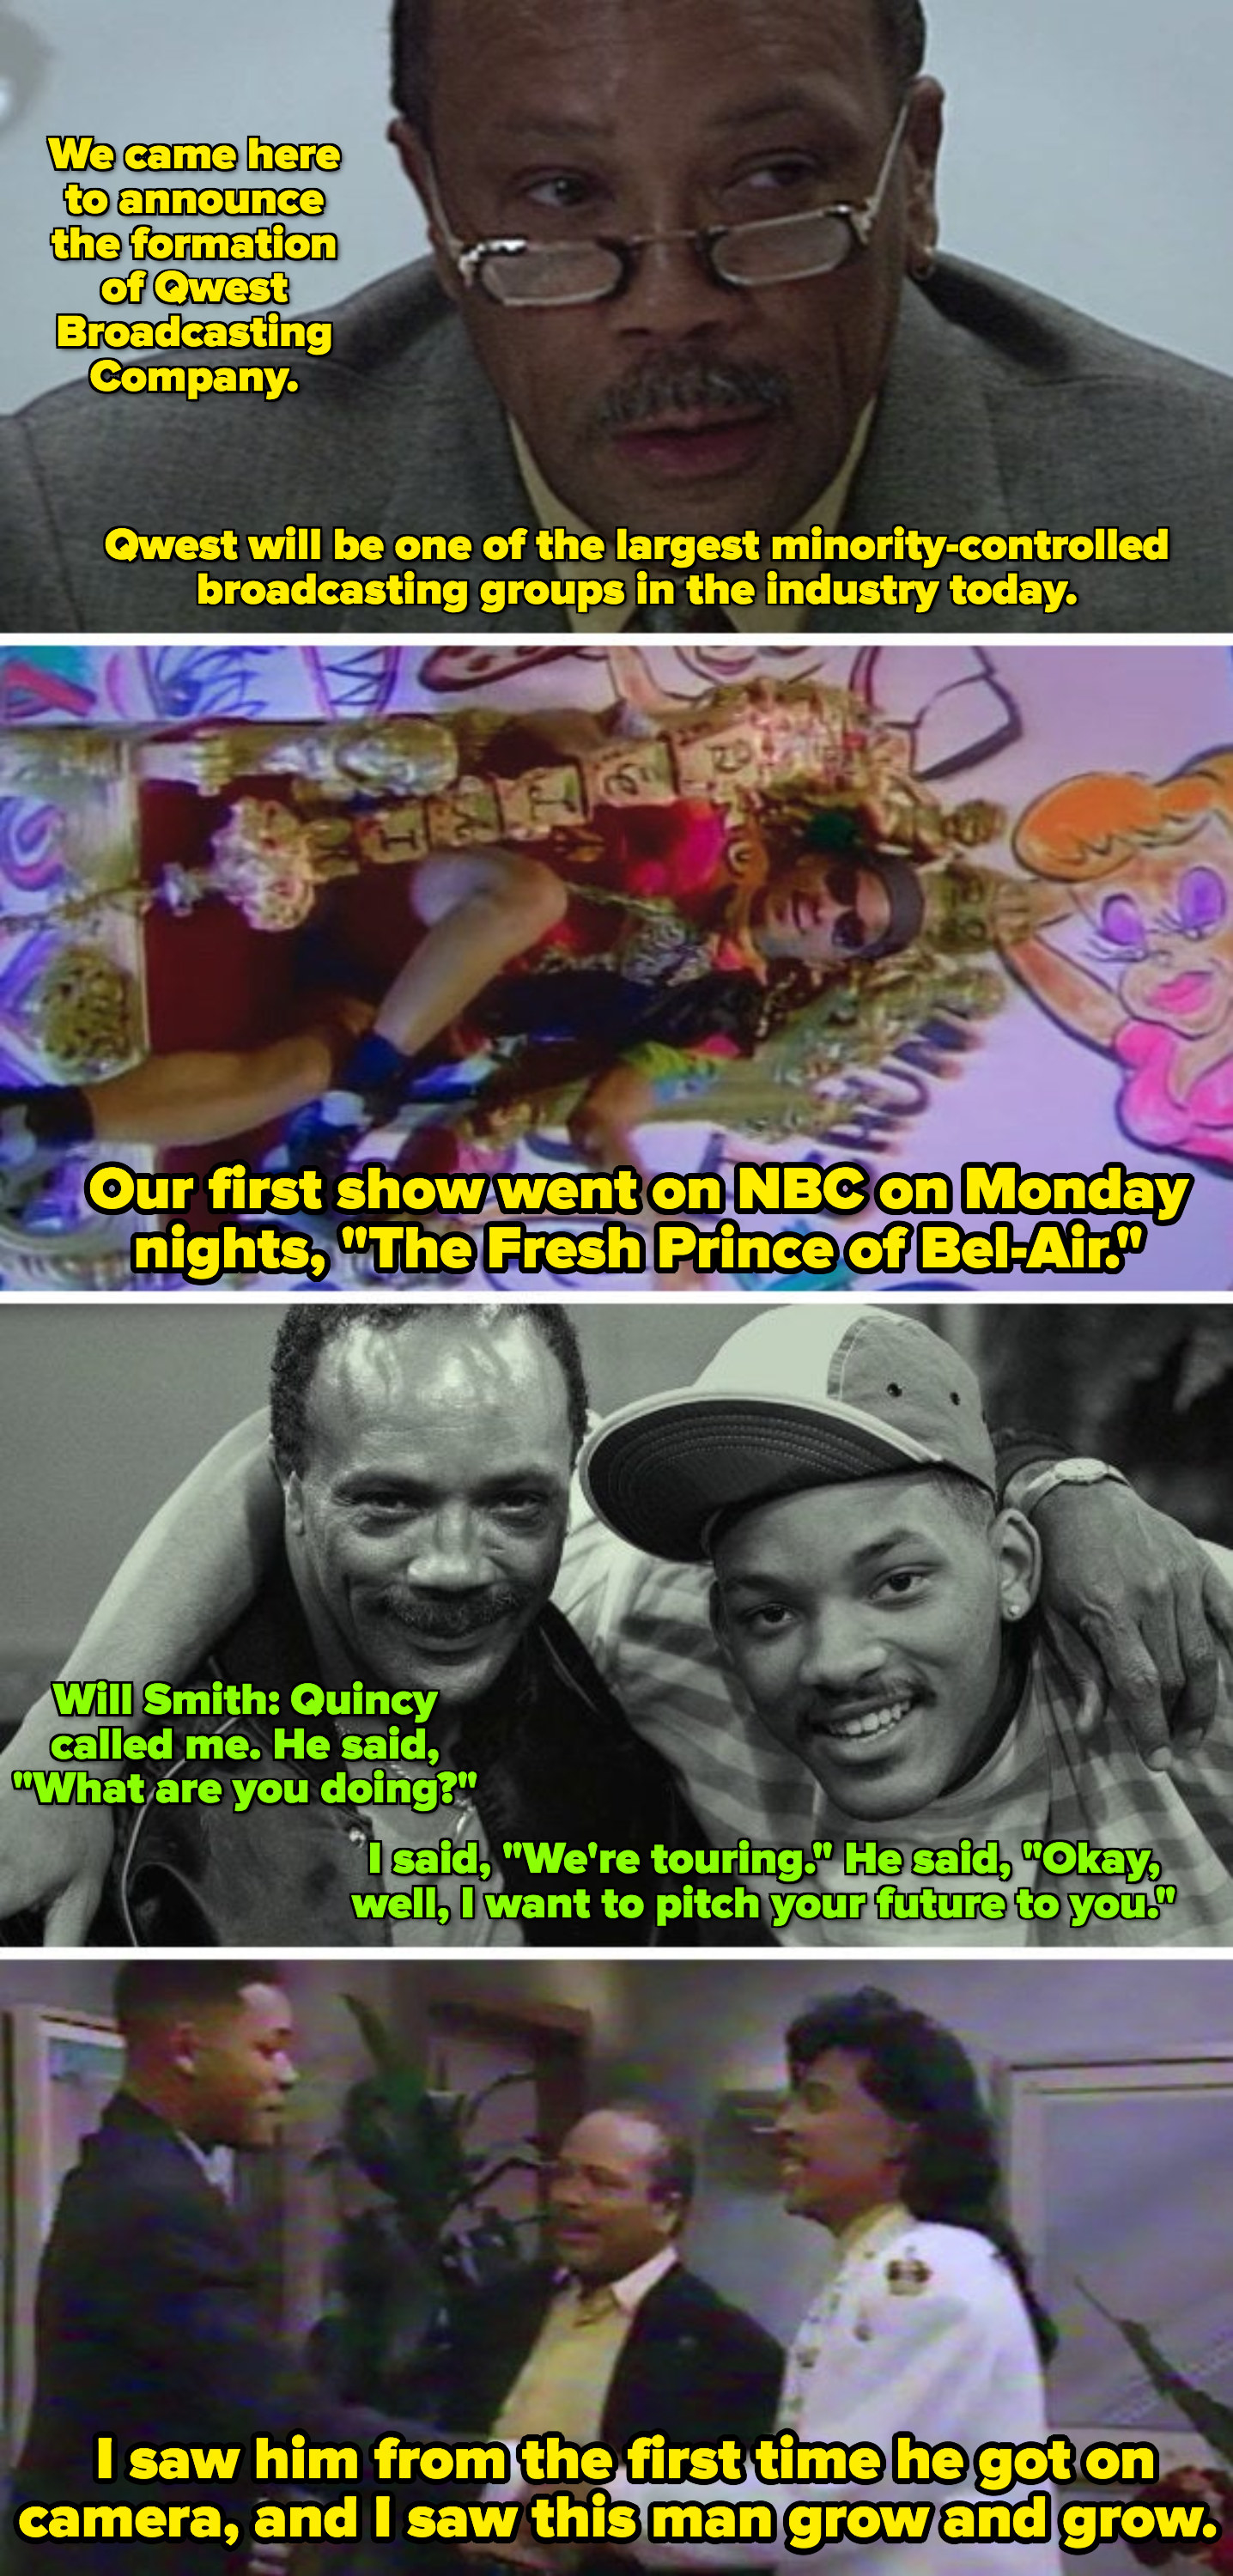 """Quincy Jones discussing forming his own broadcasting company and creating """"The Fresh Prince of Bel-Air:"""" """"I saw [Will Smith] from the first time he got on camera, and I saw this man grow and grow"""""""